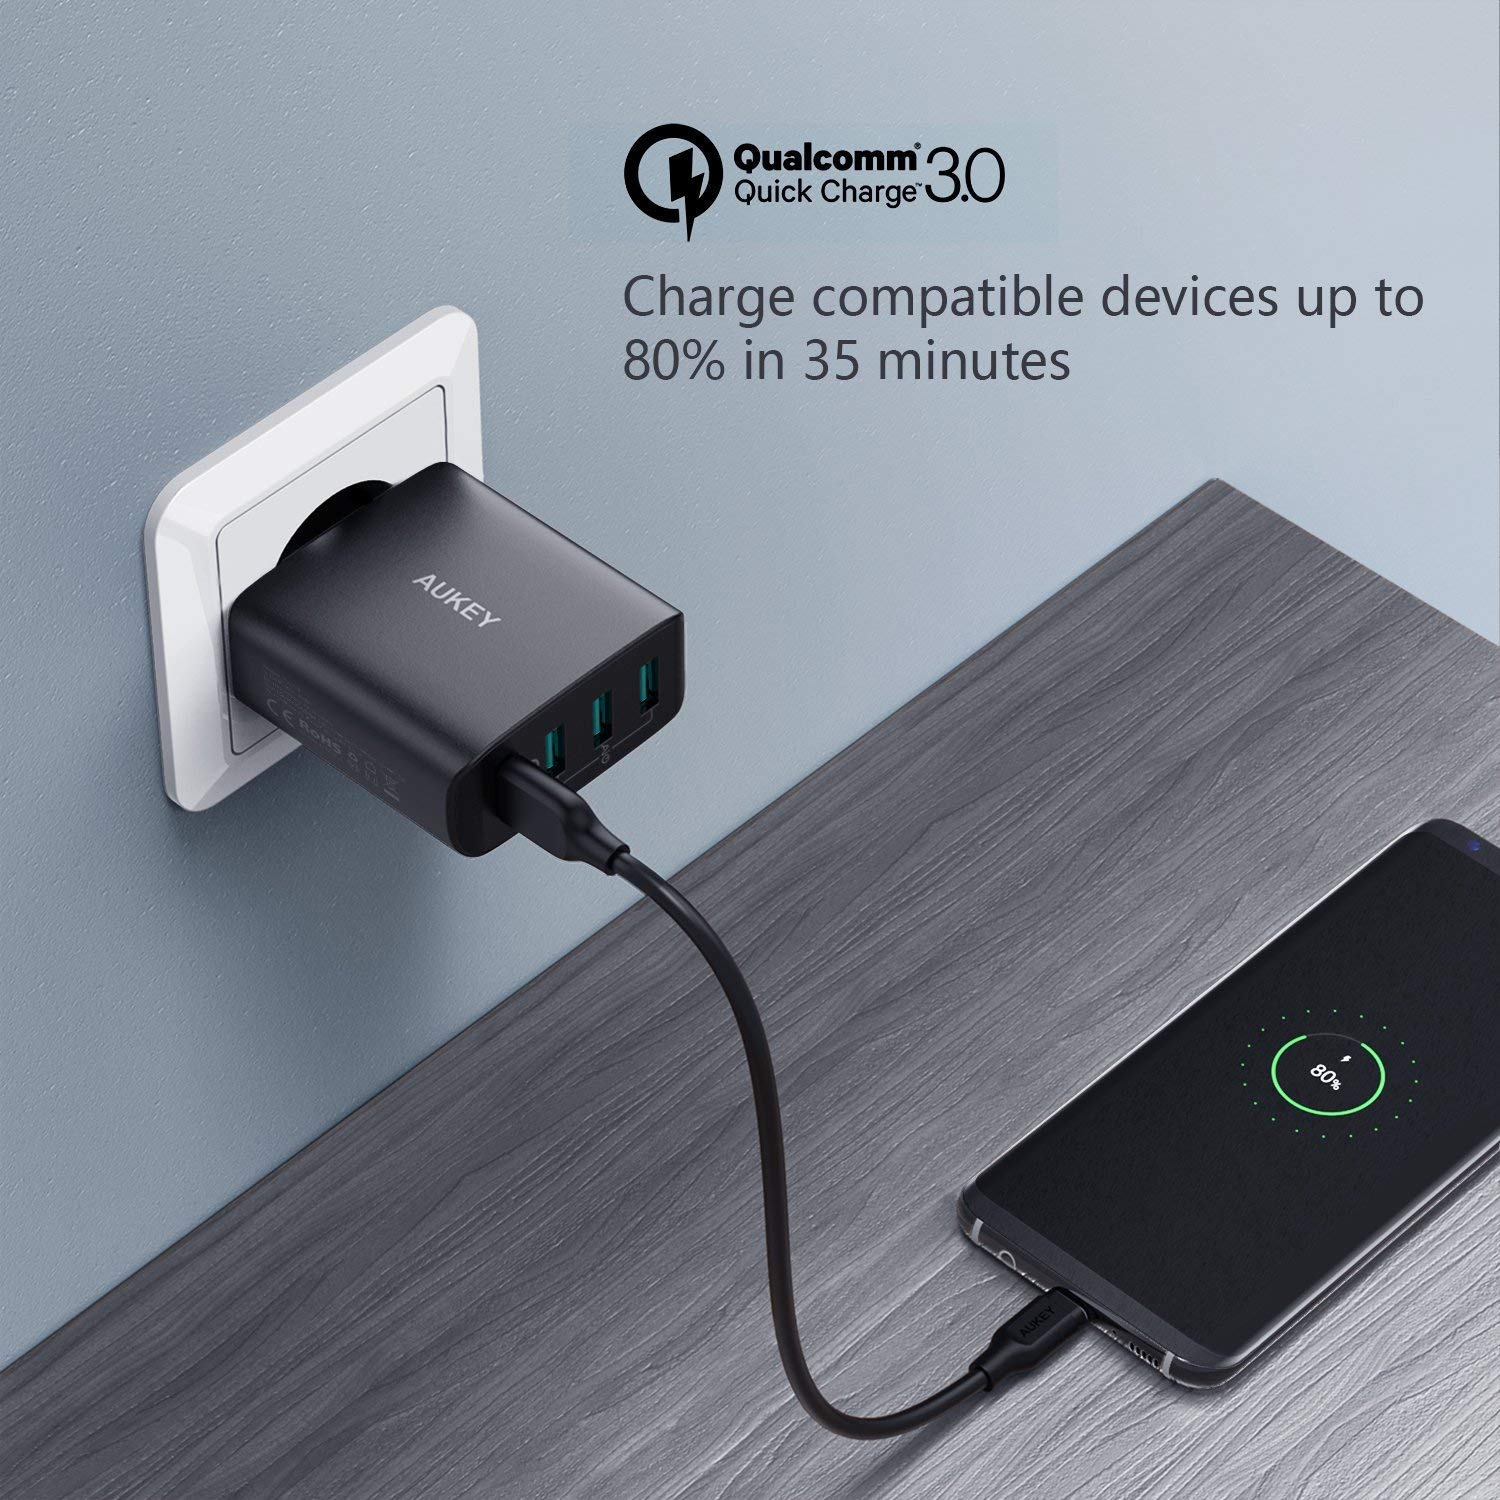 AUKEY Quick Charge 3.0 Cargador Móvil 4 Puertos 42W Cargador de Pared para Samsung Galaxy S9 / S8+ / Note 8, LG, Nexus, HTC, iPhone XS / XS Max / XR y ...